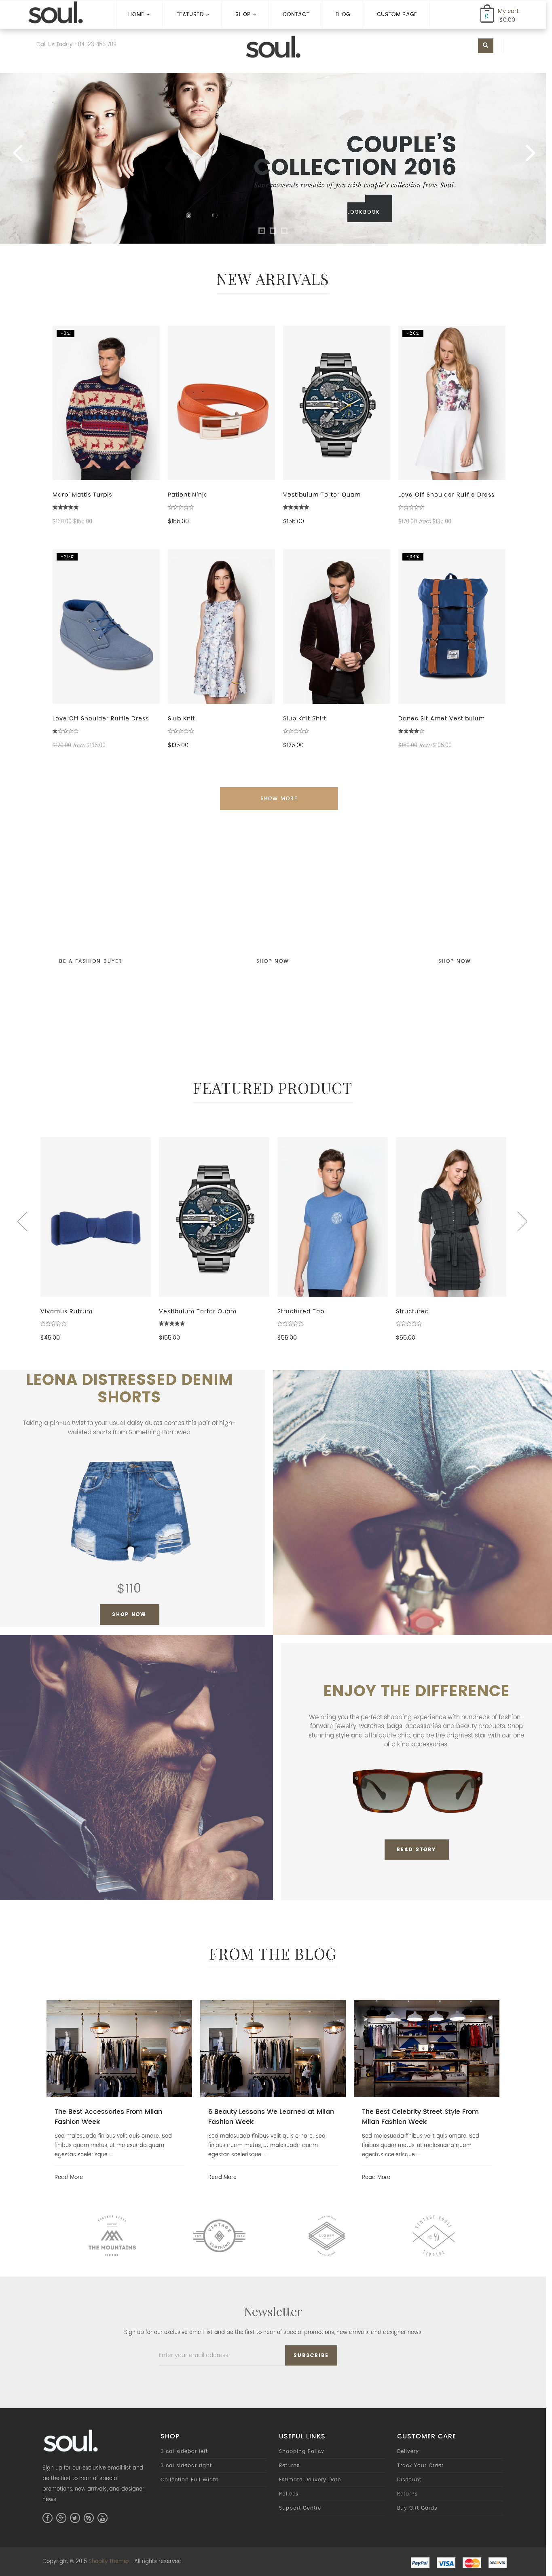 Best SHOPIFY Premium Themes Collection for Lingerie Store 2017 - Soul - Responsive Multi-purpose Shopify Theme